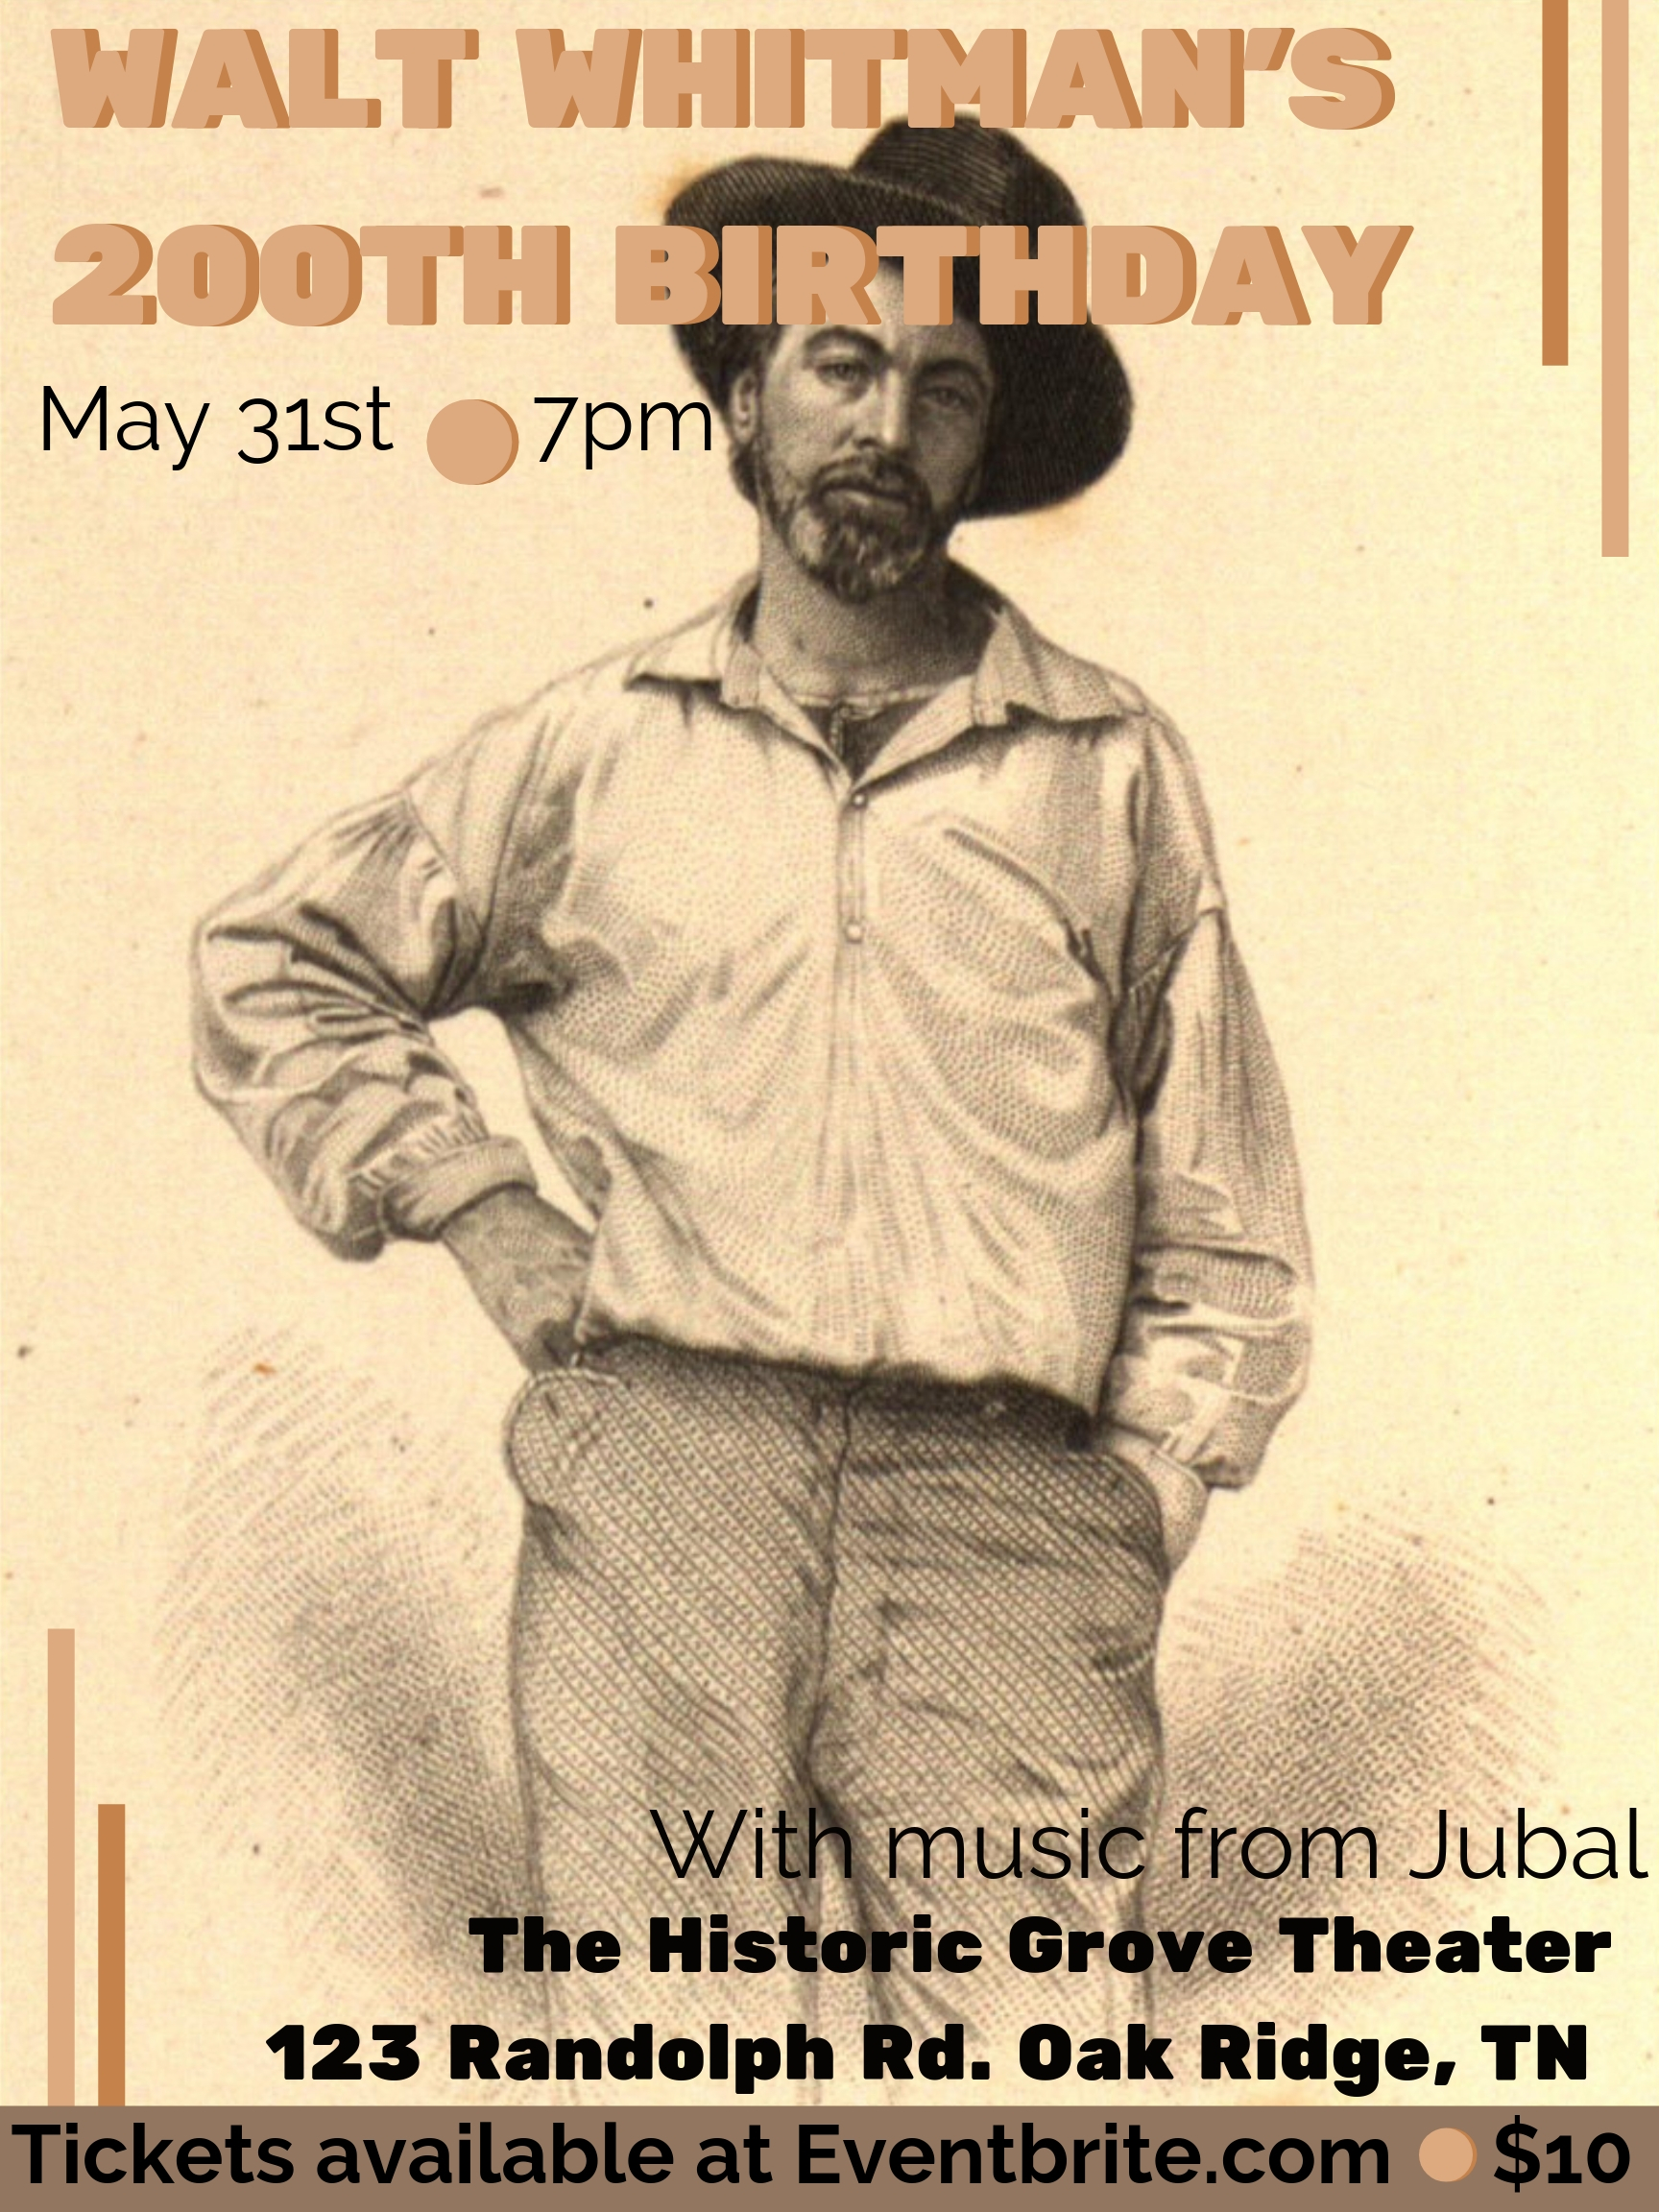 JUBAL - LIVE and in concert, 7:00 PMEast Tennessee favorite, Jubal combines rich harmonies, stellar song-writing, with a generous stage presence of Americana and folk blends that have made them one of the areas most sought after bookings.Song lyrics are breath-taking, poetic, and completely human, making them the perfect fit for Walt's 200th.Tickets available on Eventbrite for $10. Early bird pricing of $8 available until May 10.www.jubaltune.com